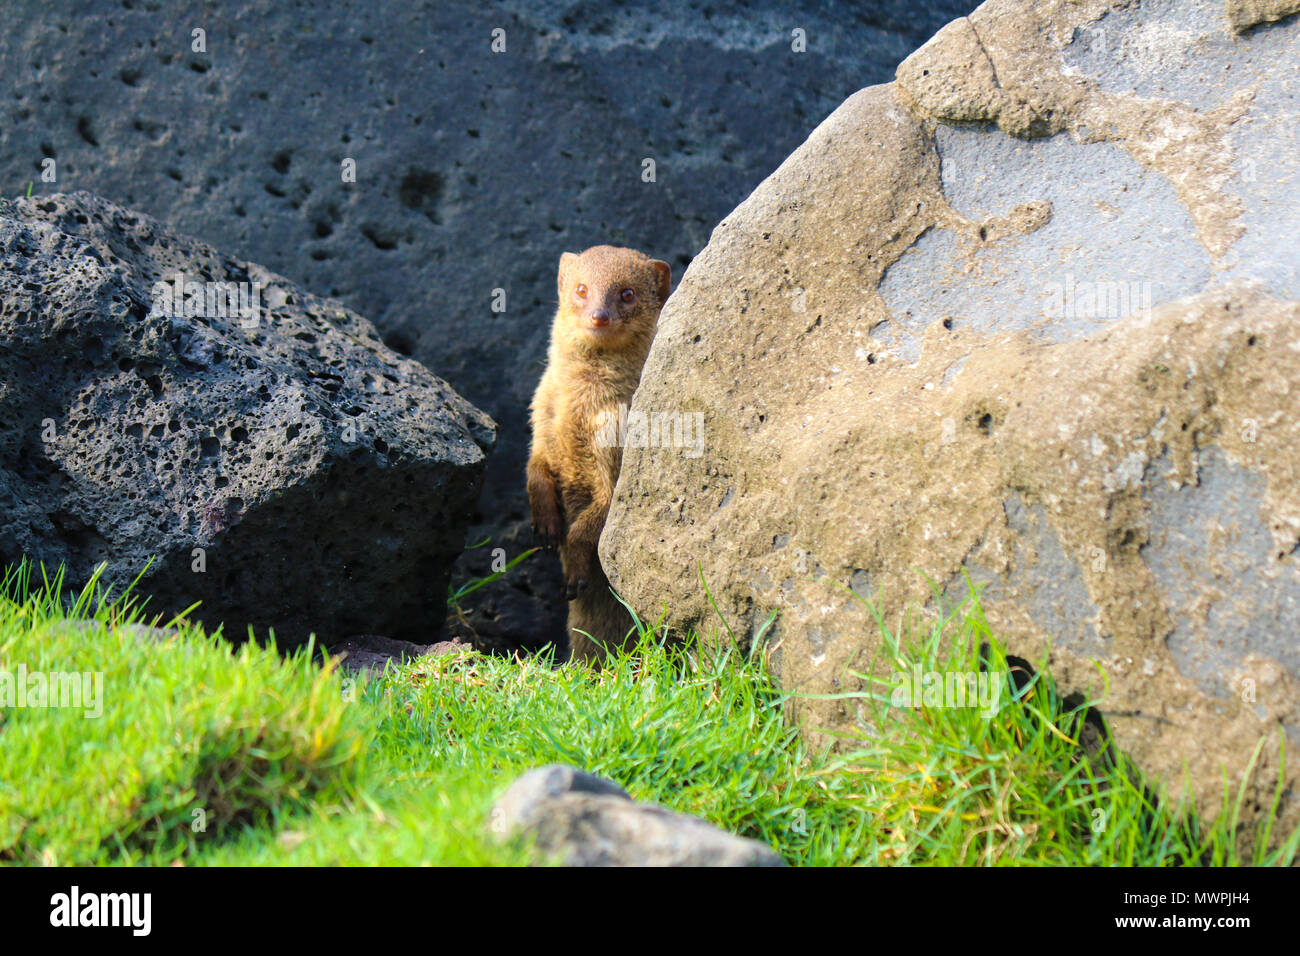 Feral mongoose hiding underneath lava rocks in Lili'uokalani Park and Gardens, Hilo Bay, Hawaii. They are considered an invasive species in Hawaii. - Stock Image